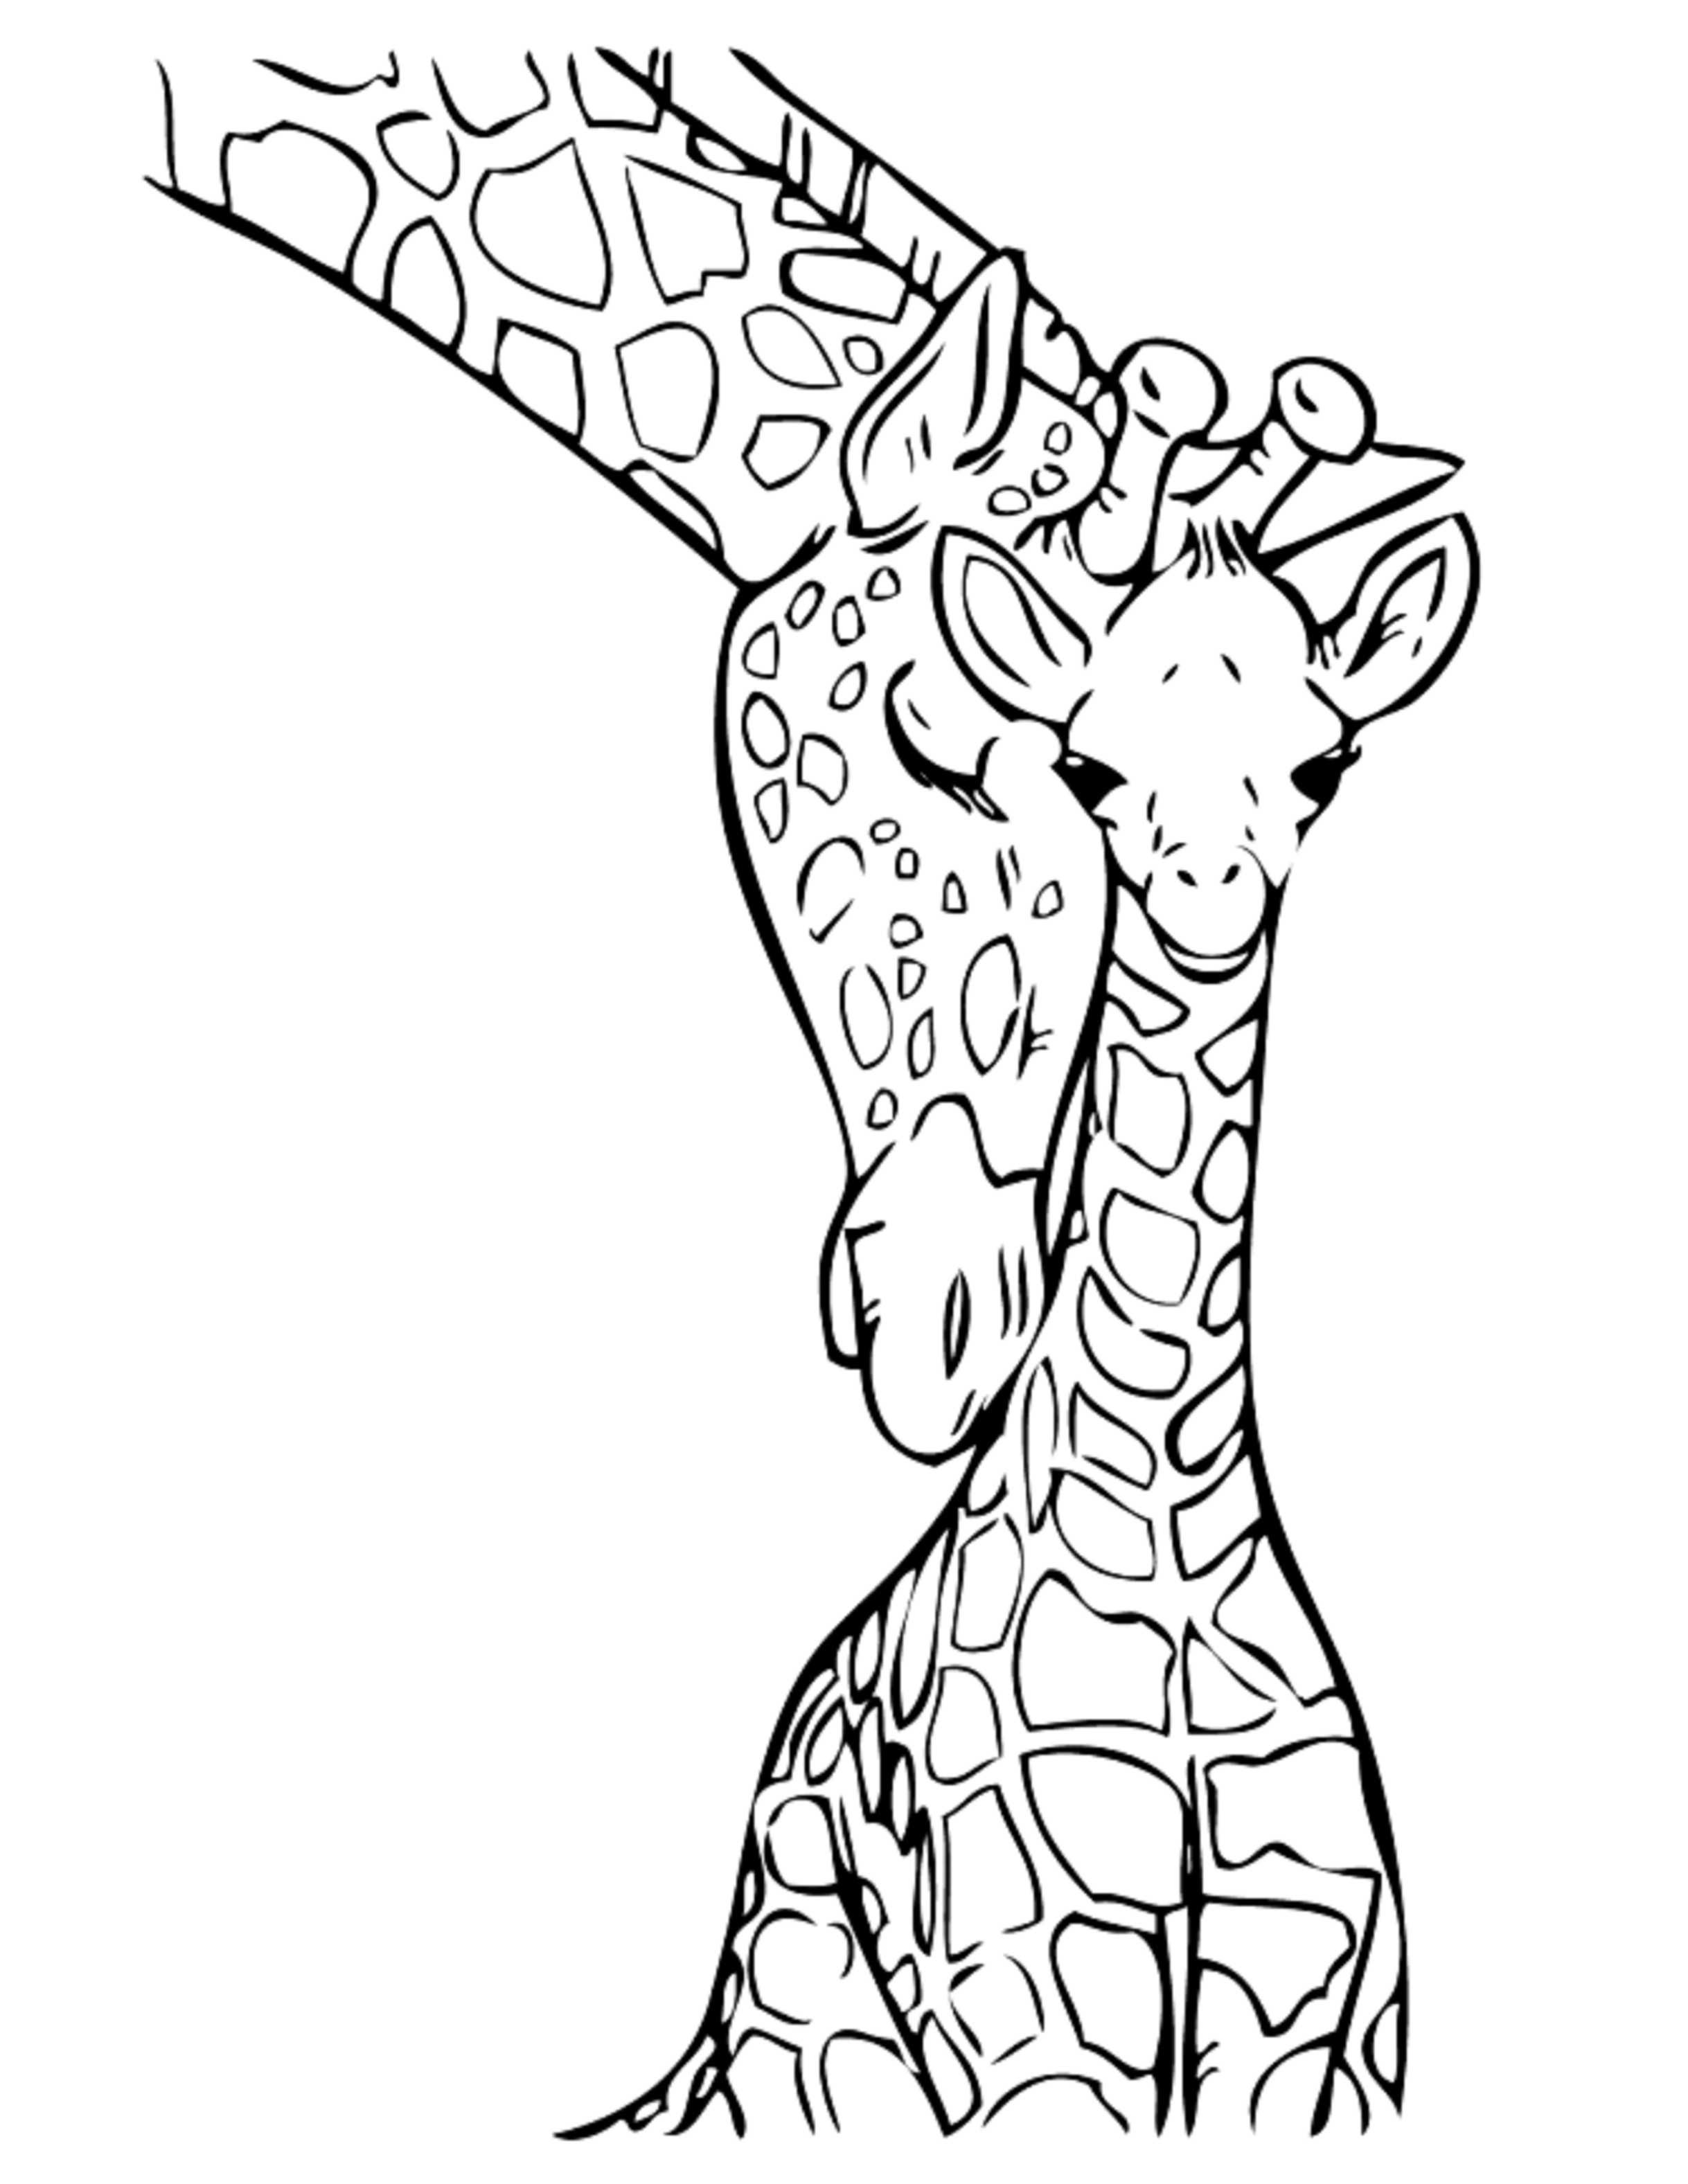 Giraffe Coloring Pages Giraffe Coloring Pages Printable Printable Kids Colouring Pages Jungle Coloring Pages Giraffe Coloring Pages Zebra Coloring Pages